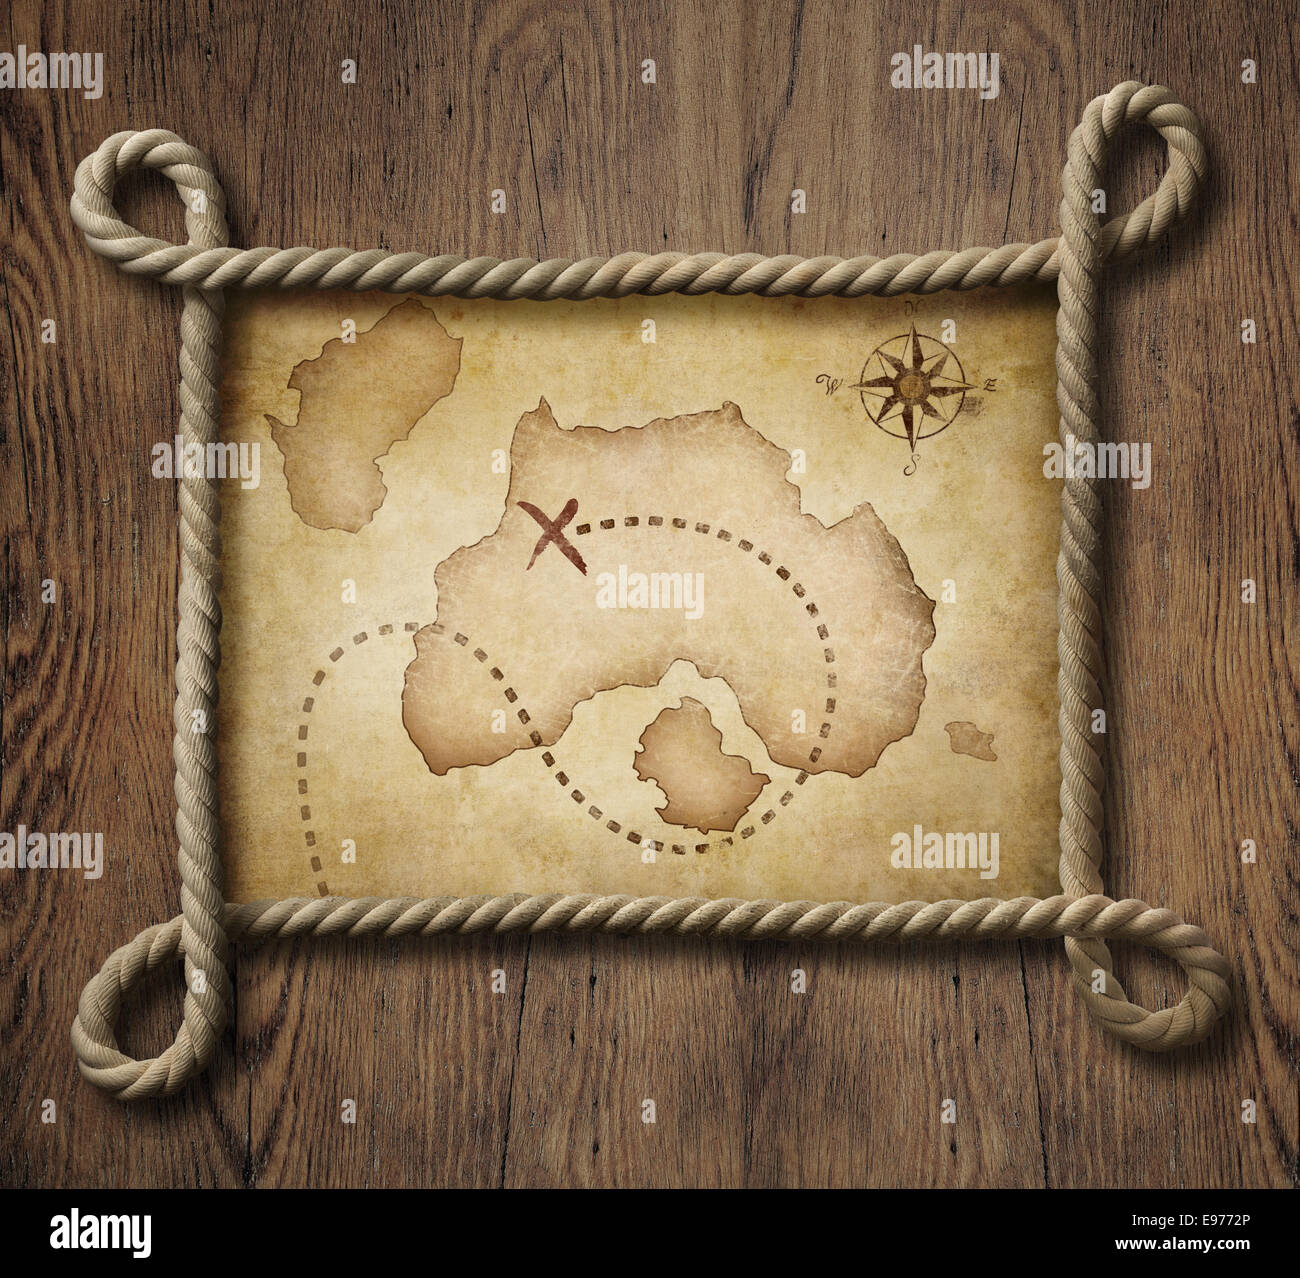 Pirate Map Stock Photos   Pirate Map Stock Images   Alamy Pirate theme nautical rope frame with old treasure map   Stock Image